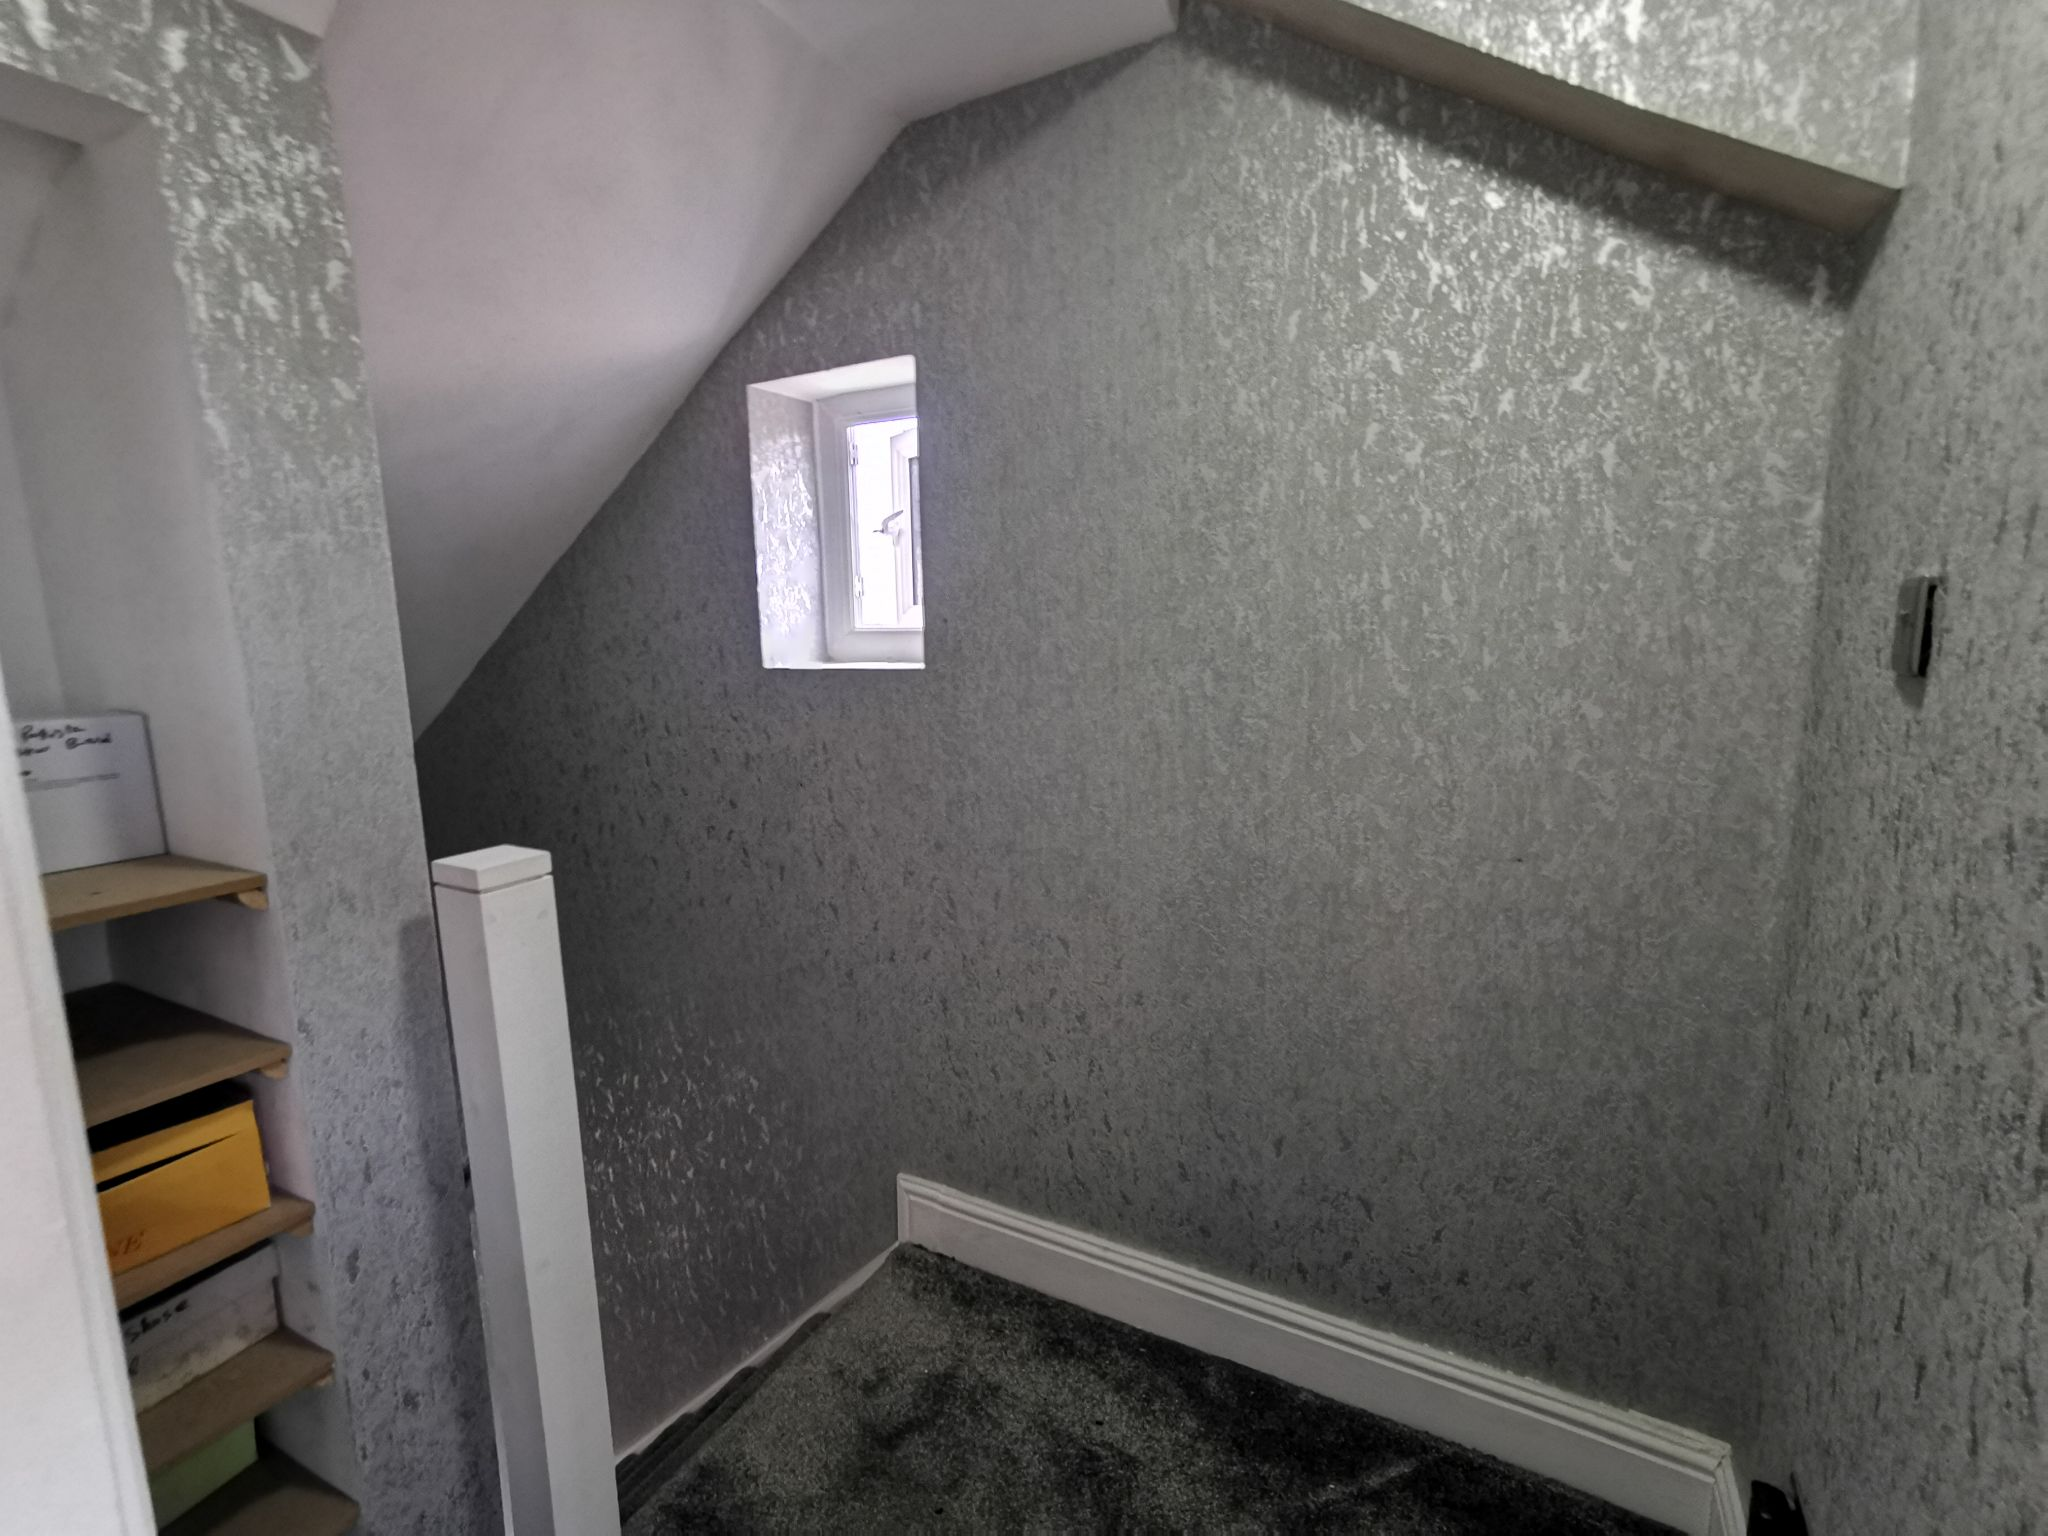 4 bedroom semi-detached house SSTC in Bradford - Photograph 14.